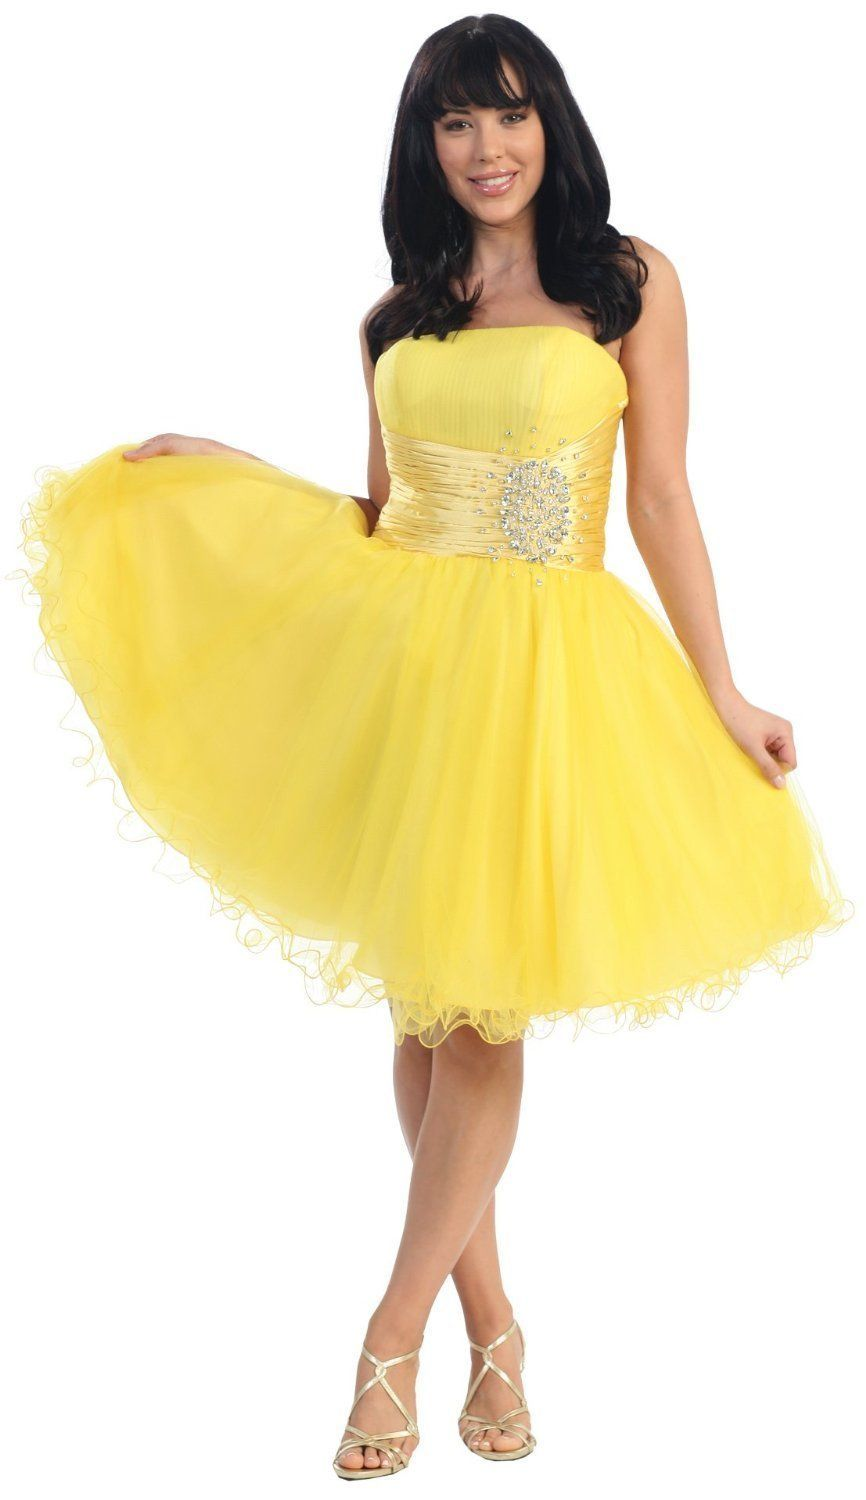 Strapless-Cocktail-Party-Junior-Yellow-Formal-Dress- | Formal ...